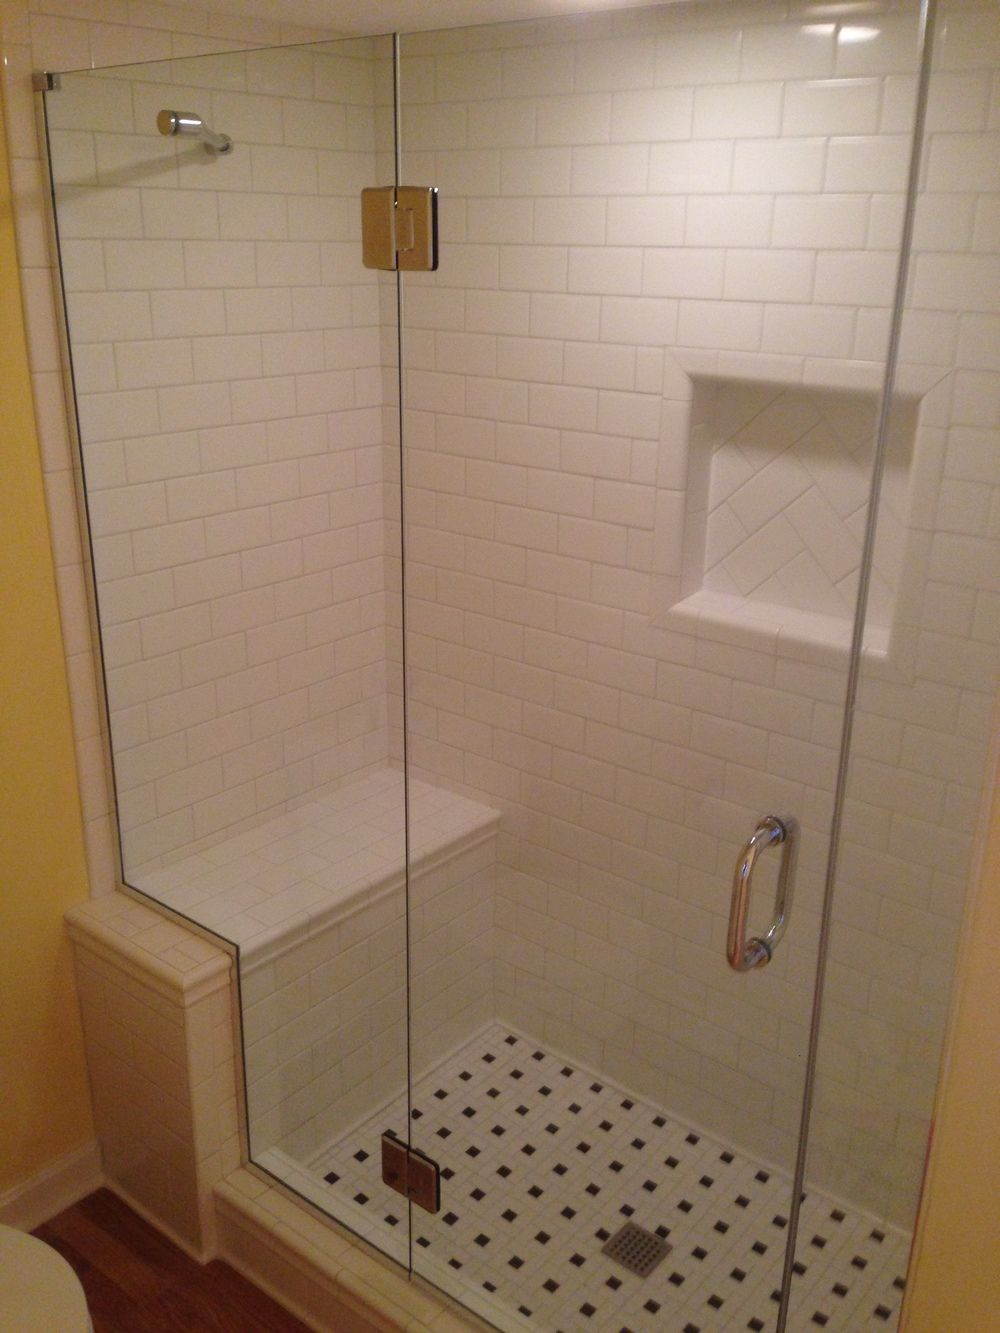 Converting Tub To Walk In Shower Bathroom Remodel Shower Small